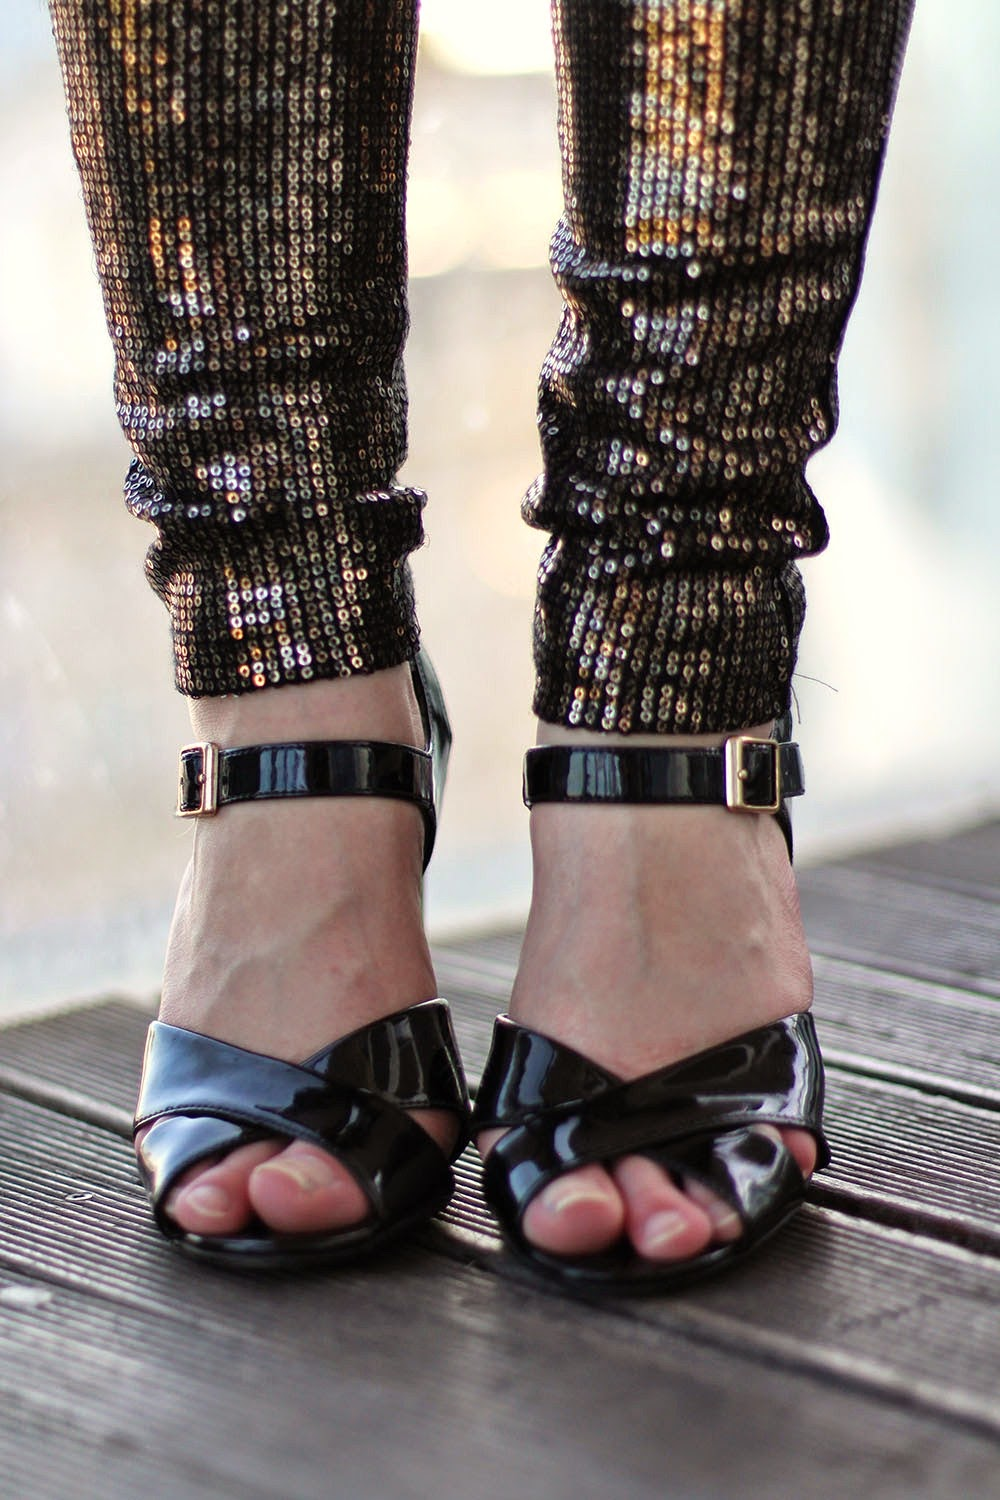 bloggers-love-fashion-week-OOTD-outfit-clothes-sparkly-trousers-sequins-heels